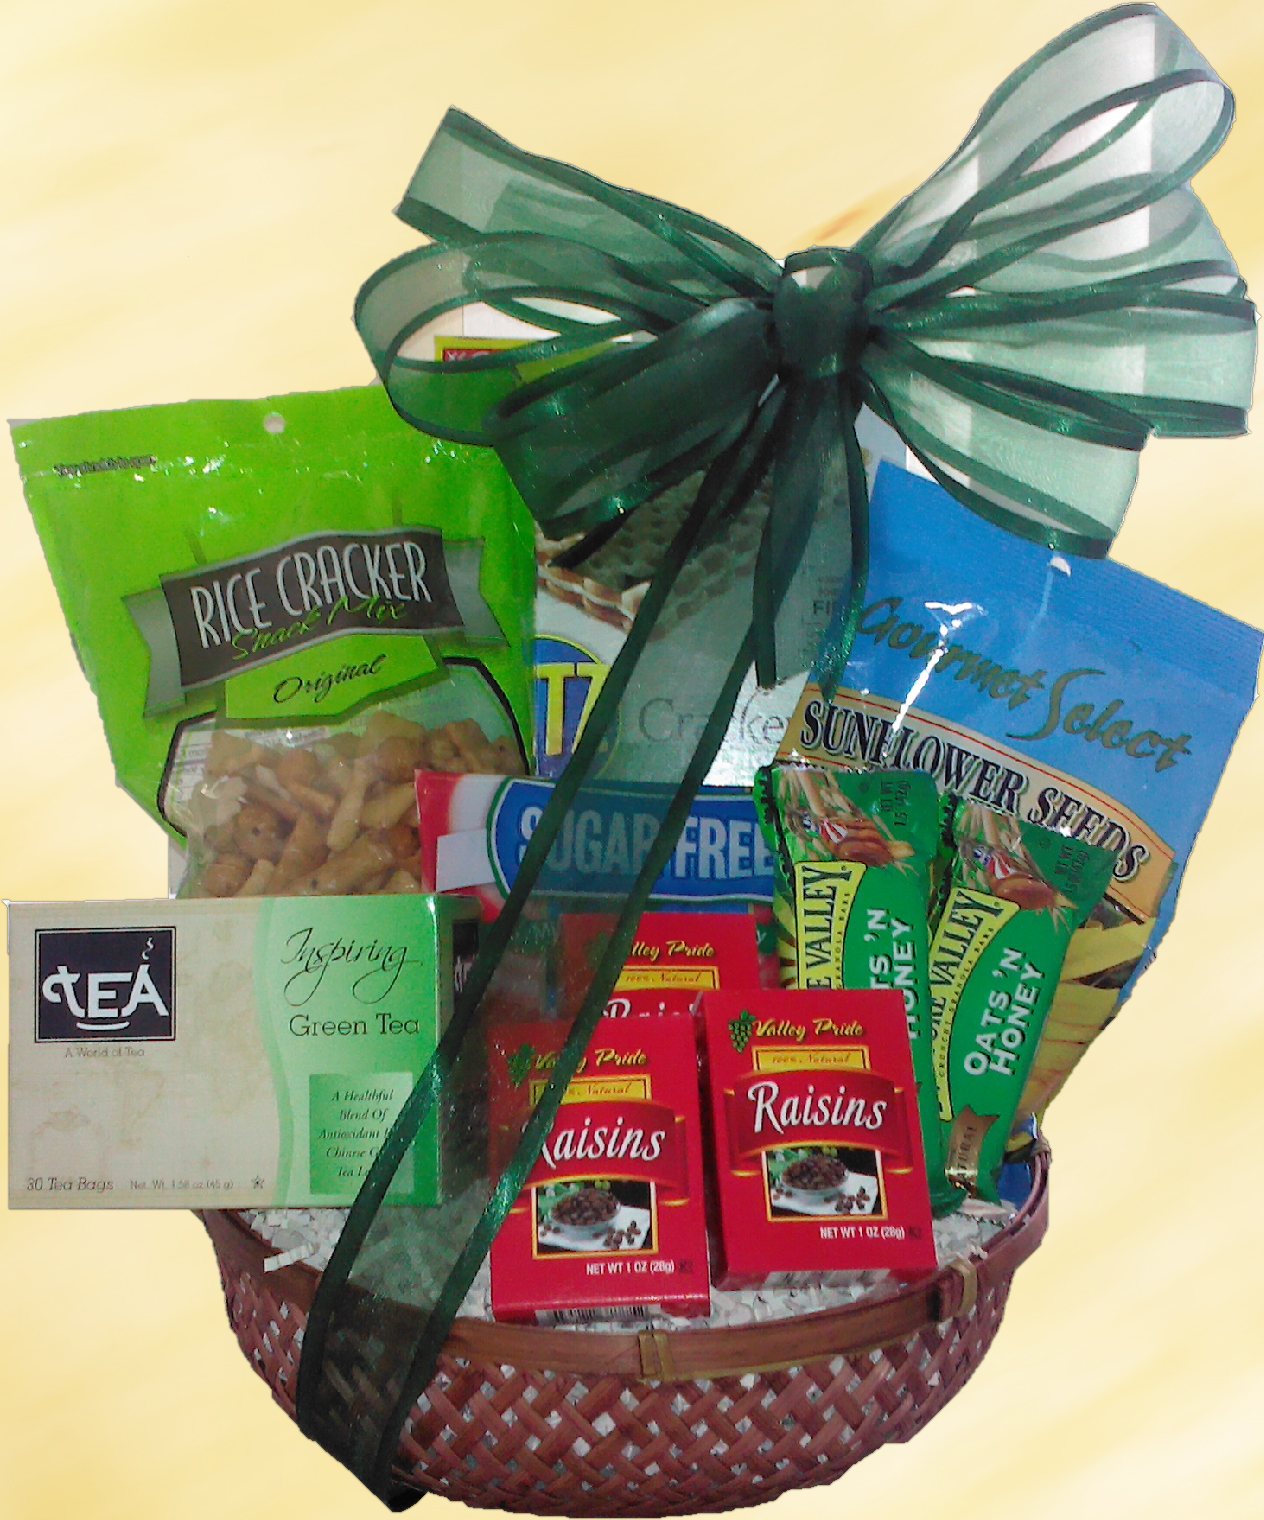 Healthy snack gift basket includes rice crackers sugar free healthy snack gift basket includes rice crackers sugar free mints wheat crackers negle Images